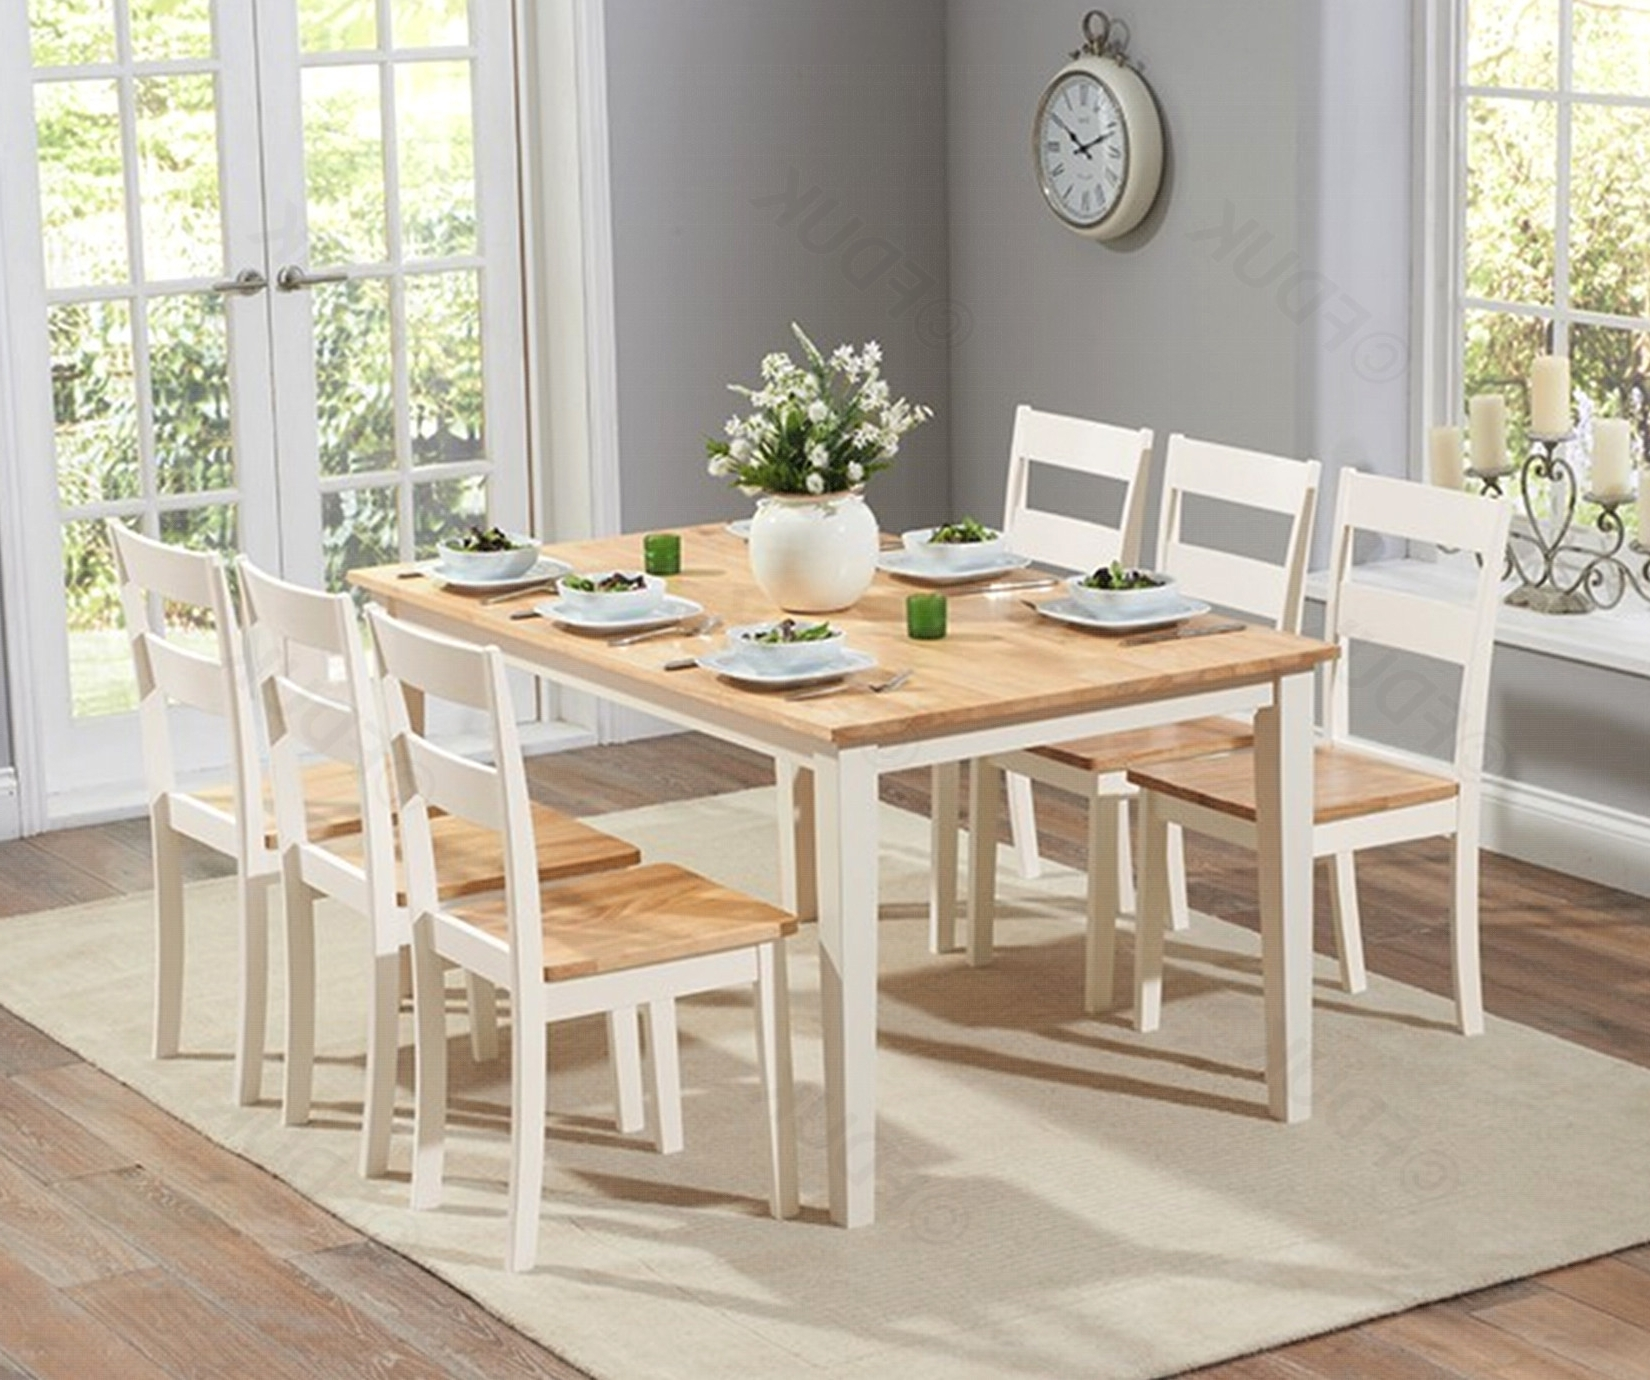 Cream And Oak Dining Tables Intended For Preferred Mark Harris Chichester (View 7 of 25)